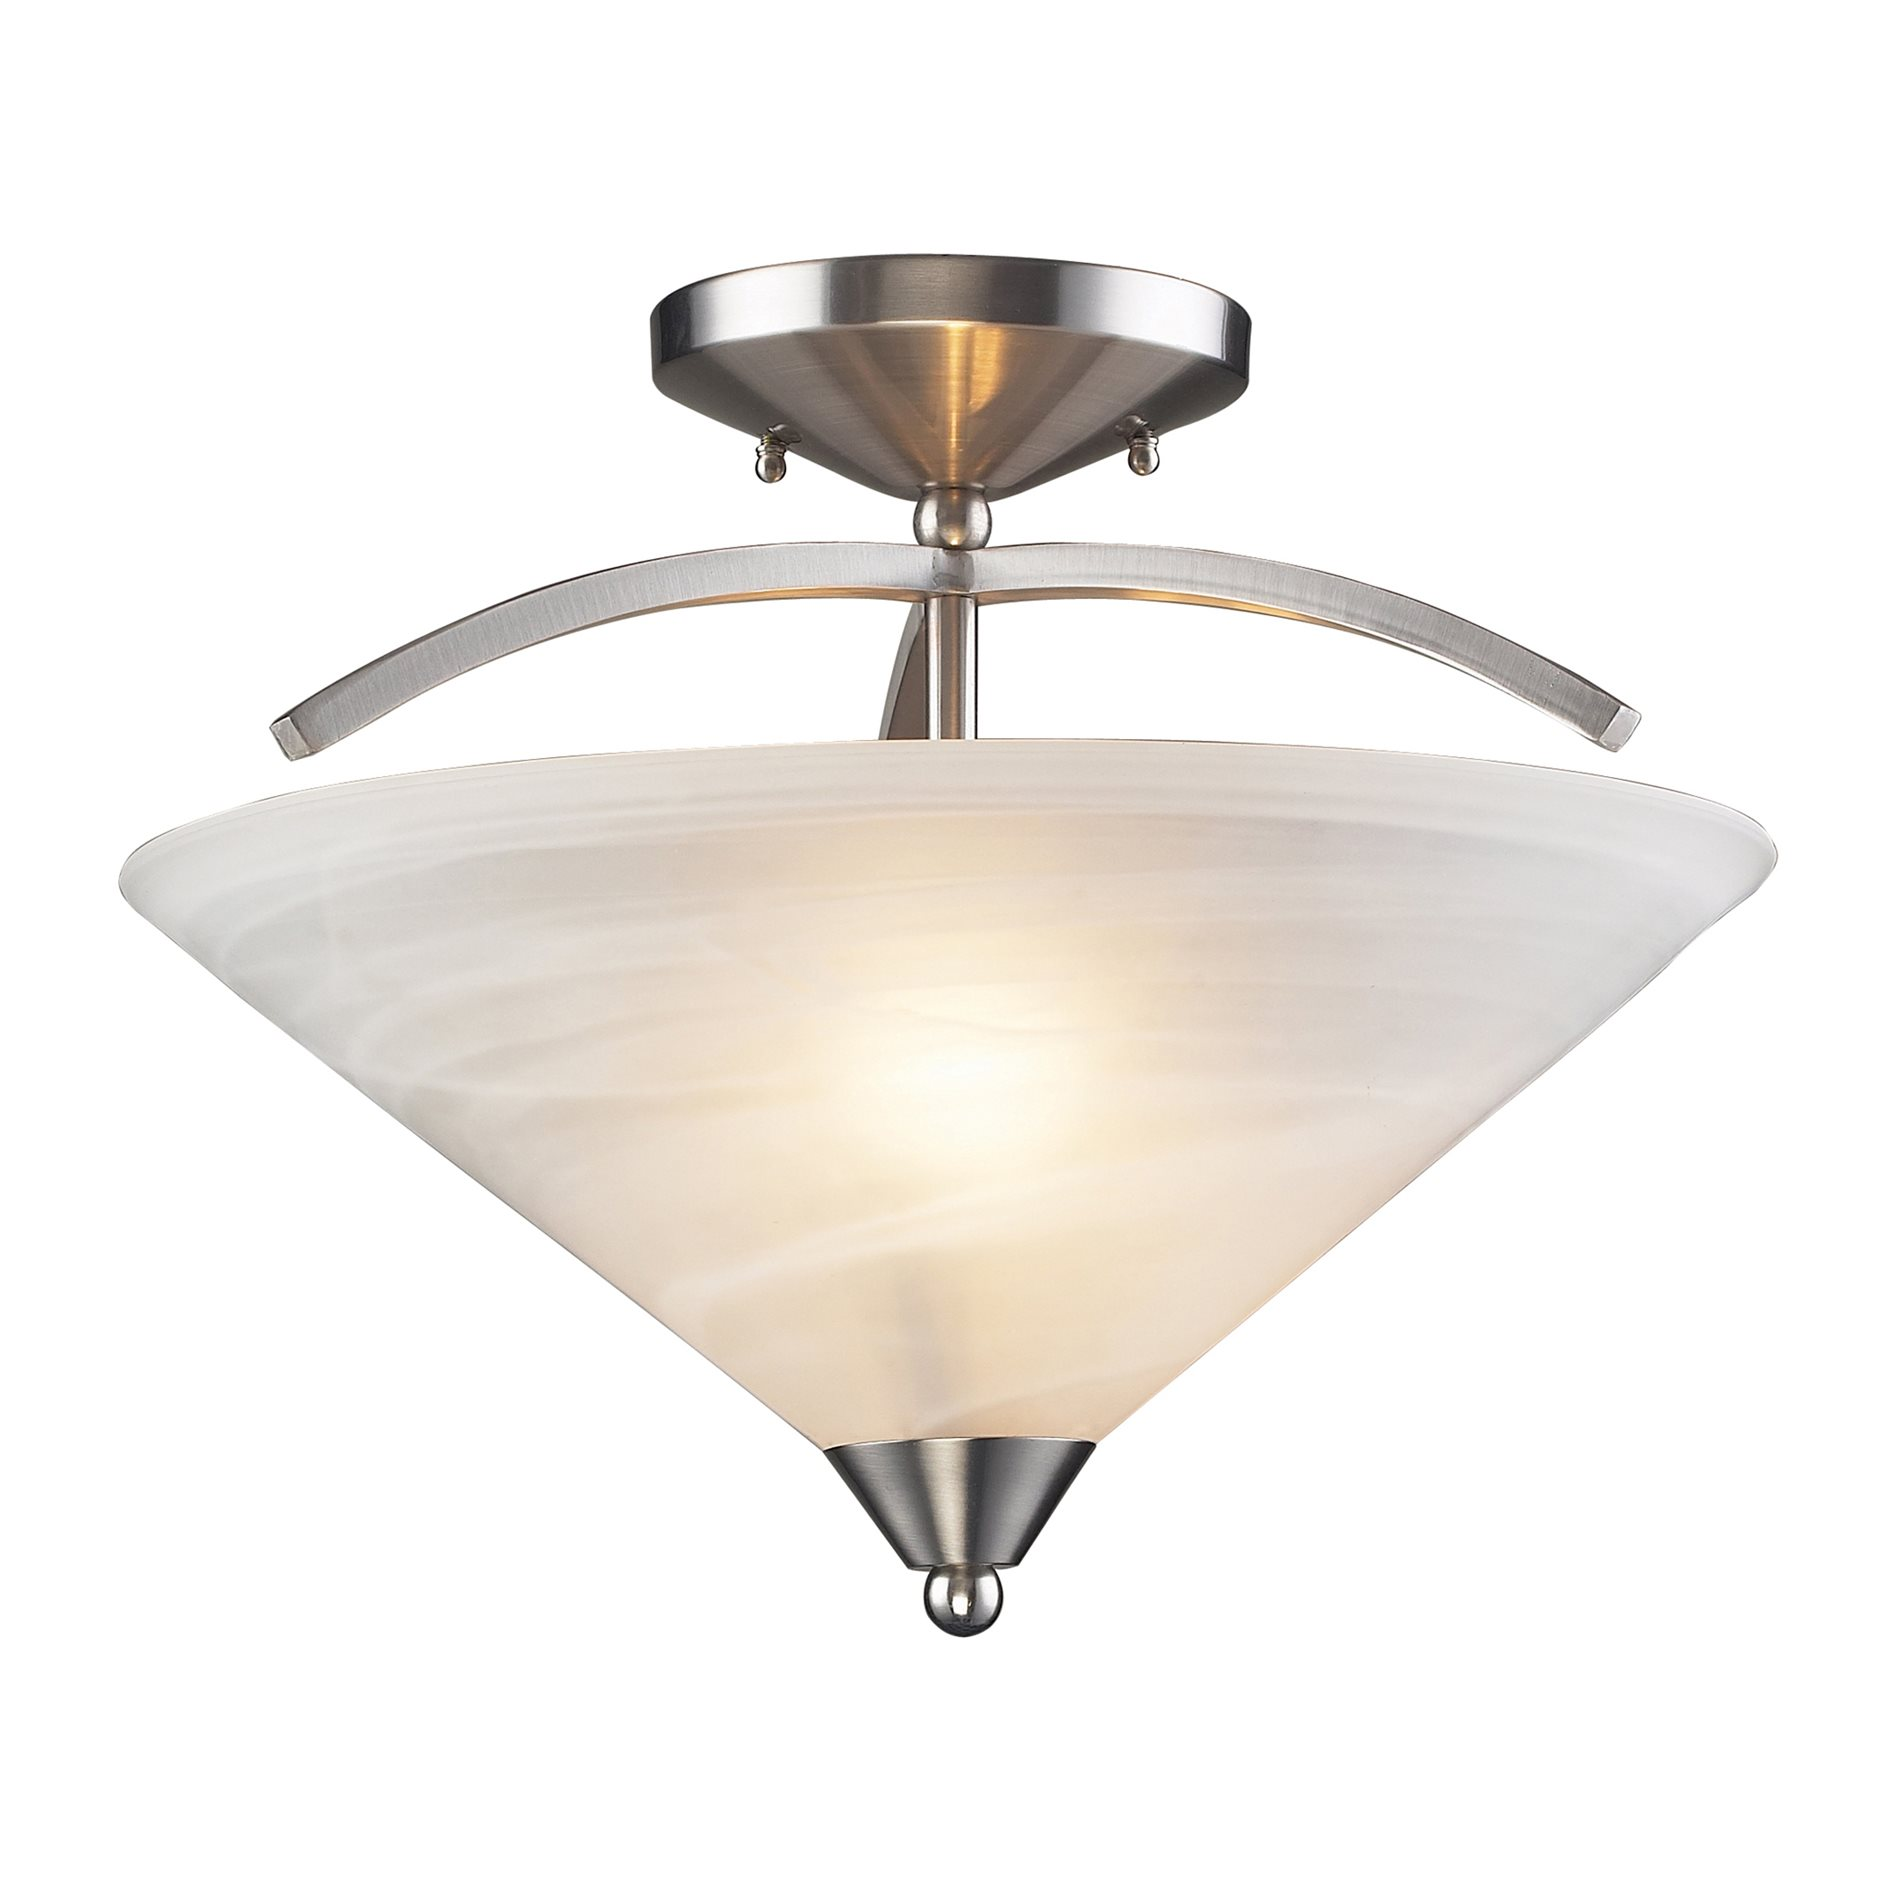 Elk Lighting Fans: Elk Lighting 7633/2 Elysburg Contemporary Semi Flush Mount